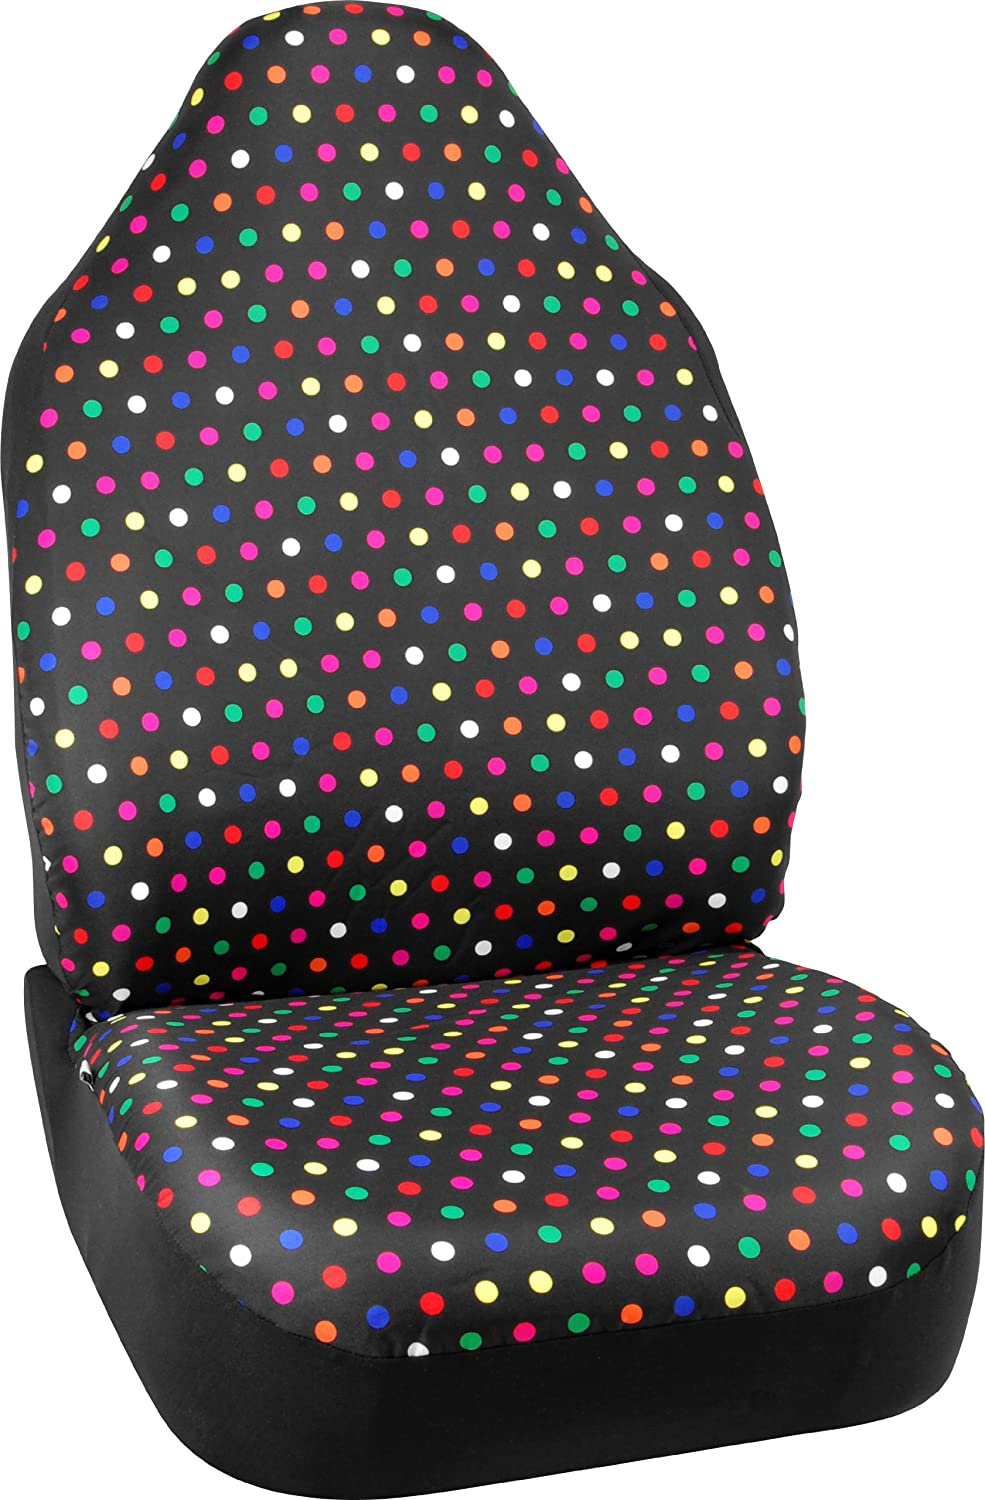 Bell Automotive 22-1-56803-8 Universal Smiley Face Emoji Seat Cover